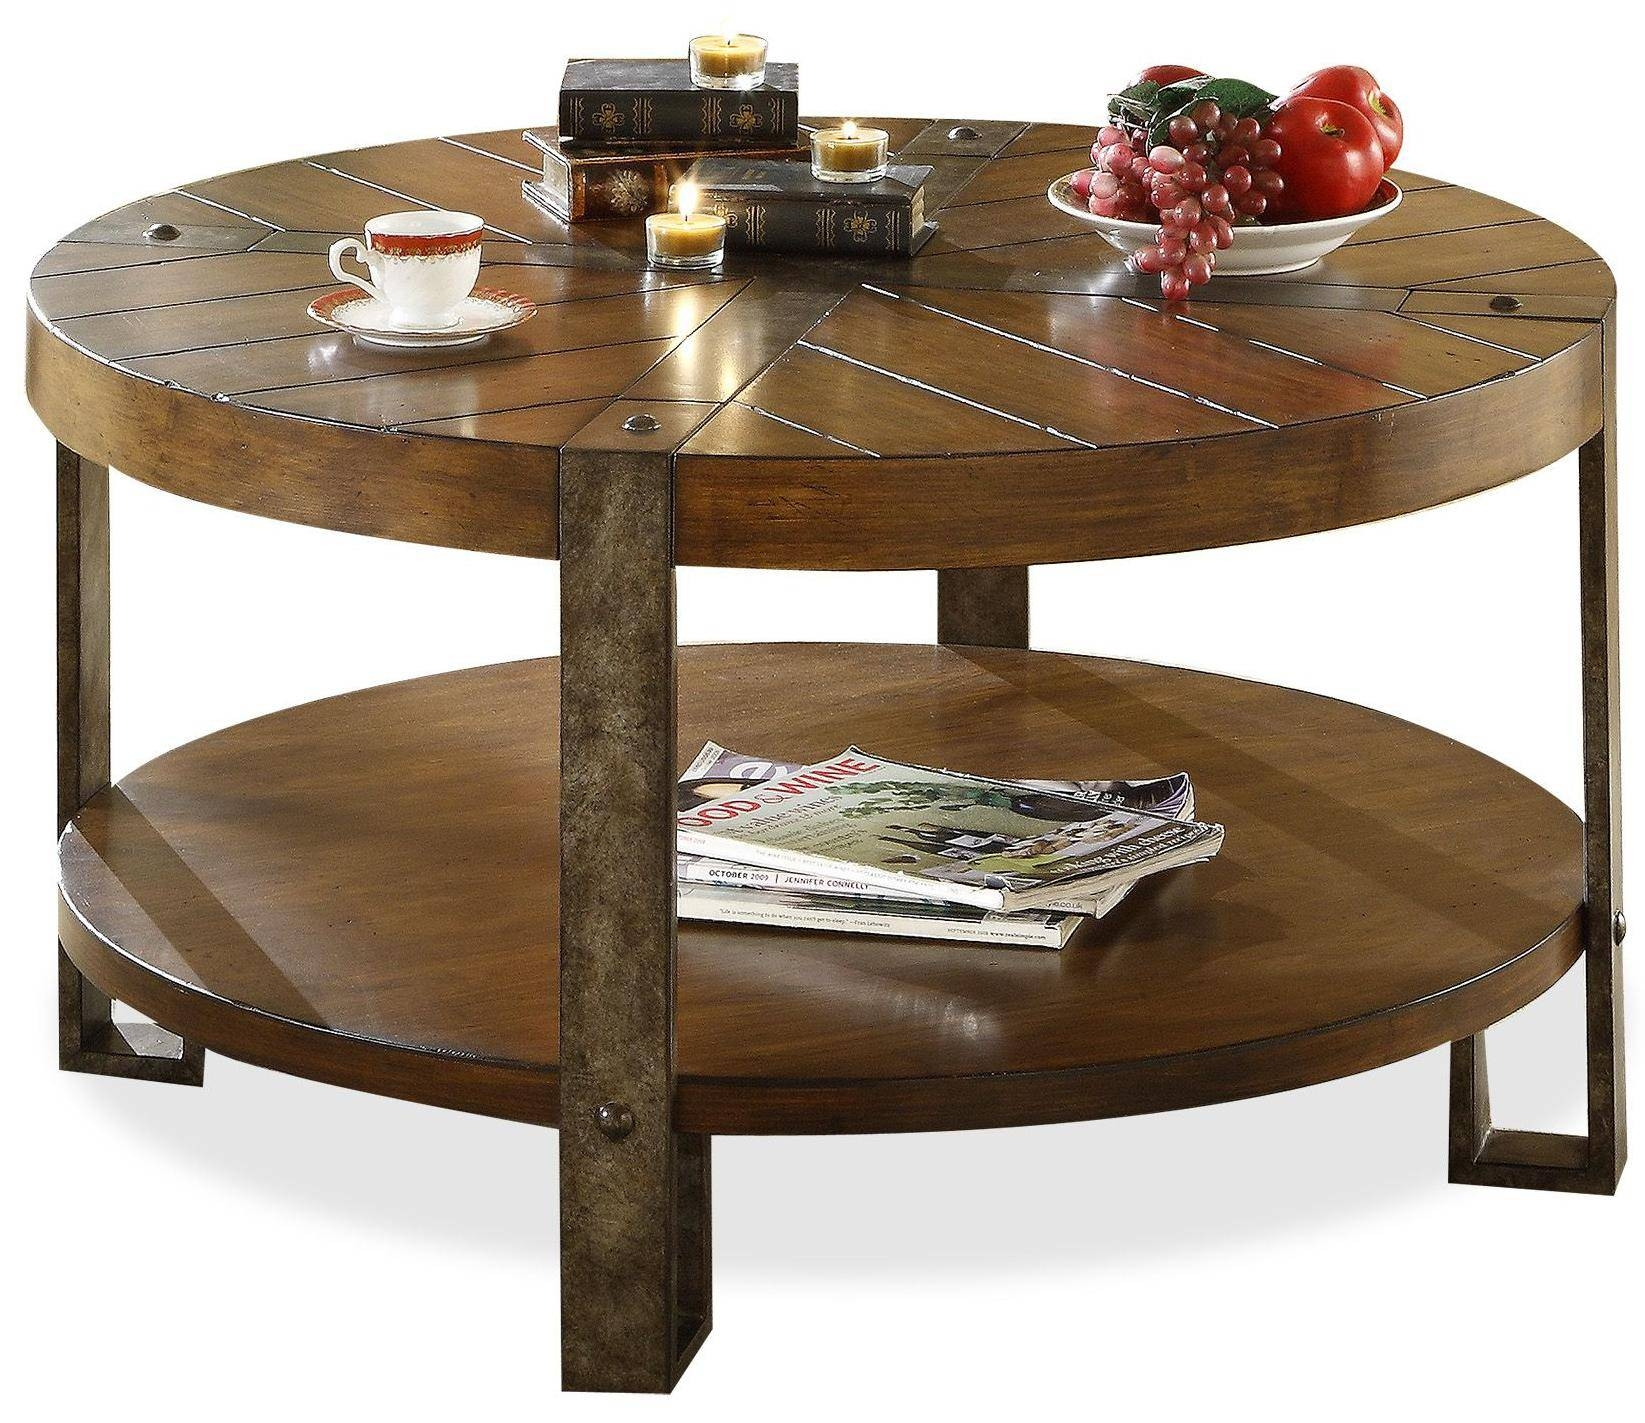 Coffee Table: Brilliant Round Coffee Table Designs Round Coffee throughout Round Coffee Table Storages (Image 7 of 30)